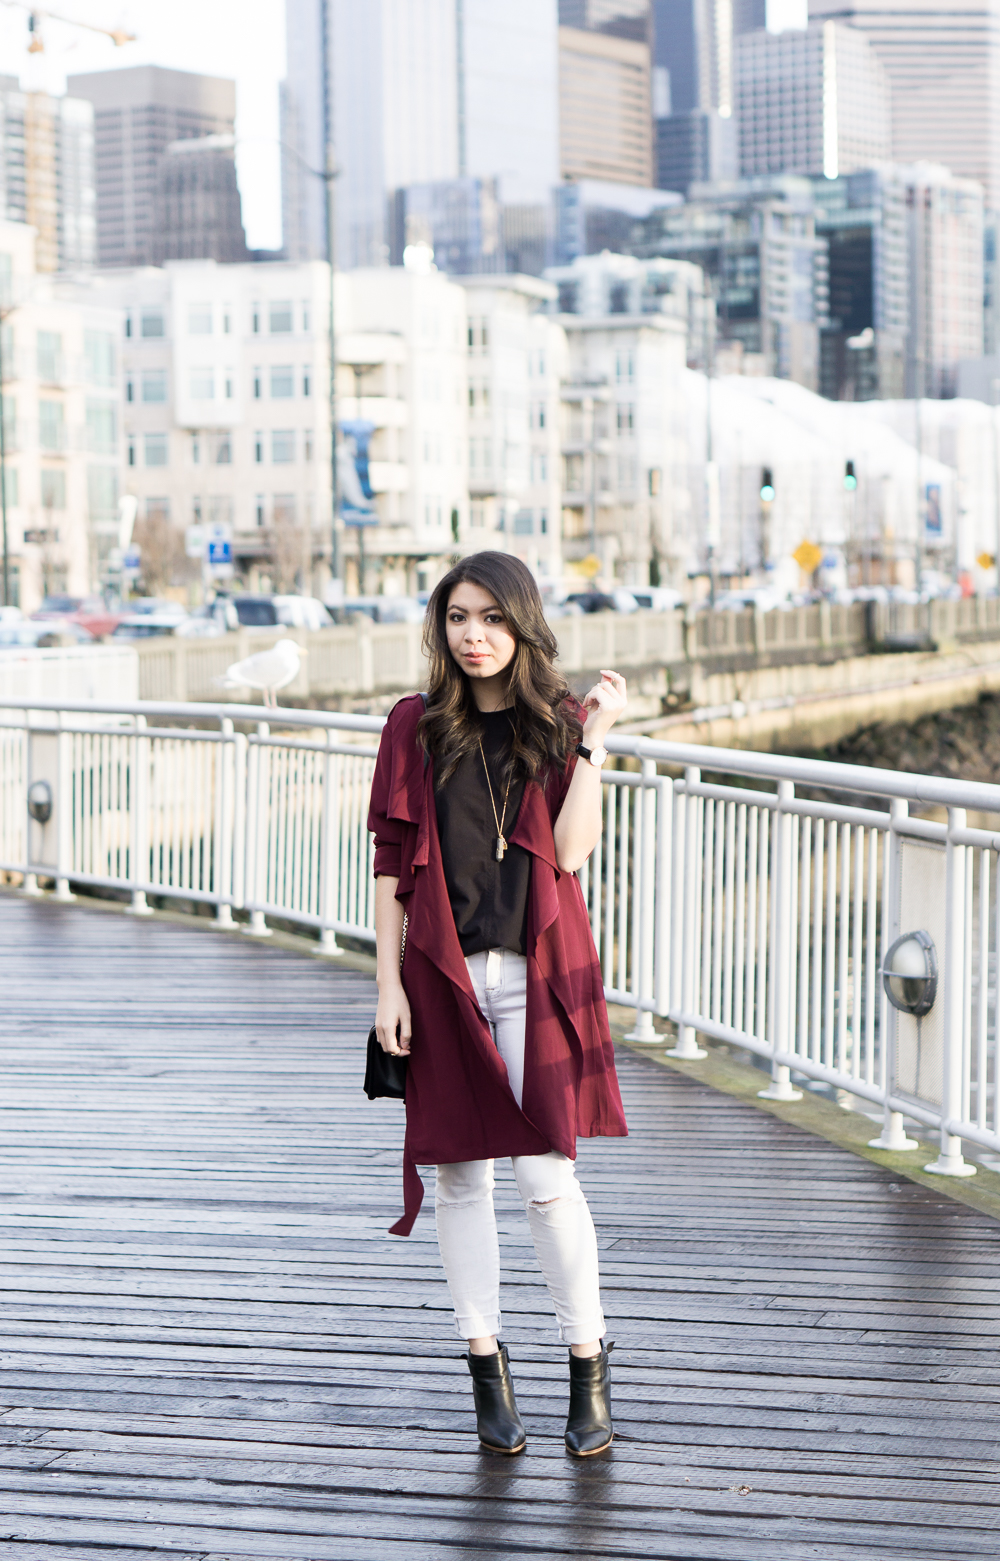 6dc2b62b3f justatinabit-shein-burgundy-trench-coat-street-style-casual-outfit-1 ...